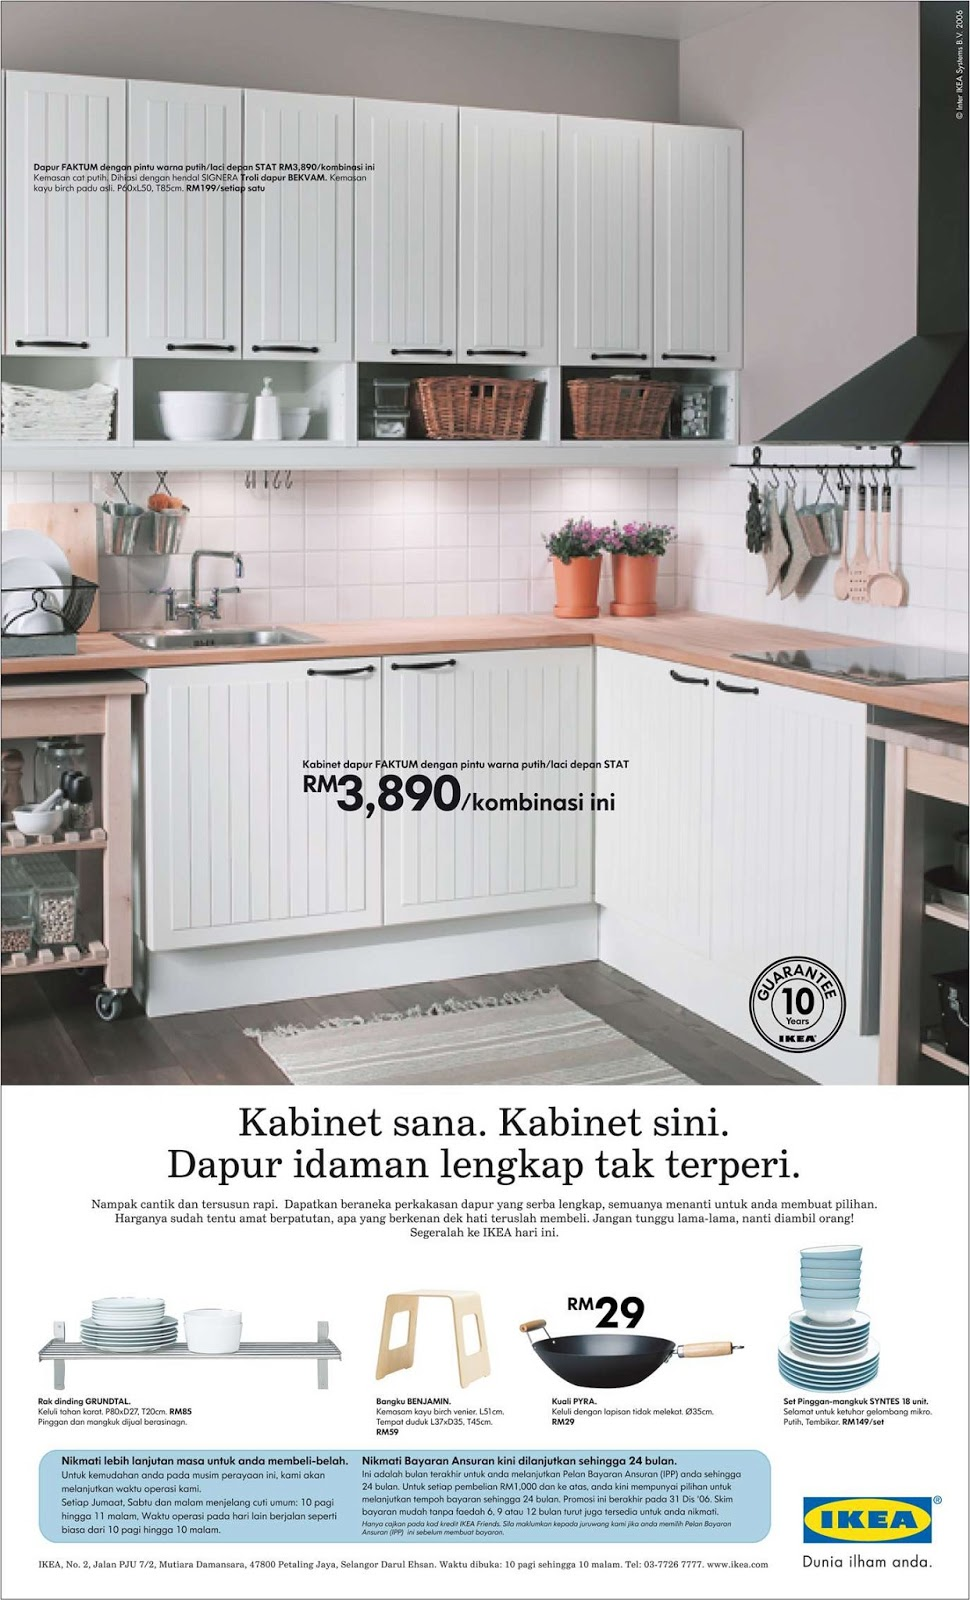 Ikea Kitchen Print Campaign Your Gets So Easy With These Helpers